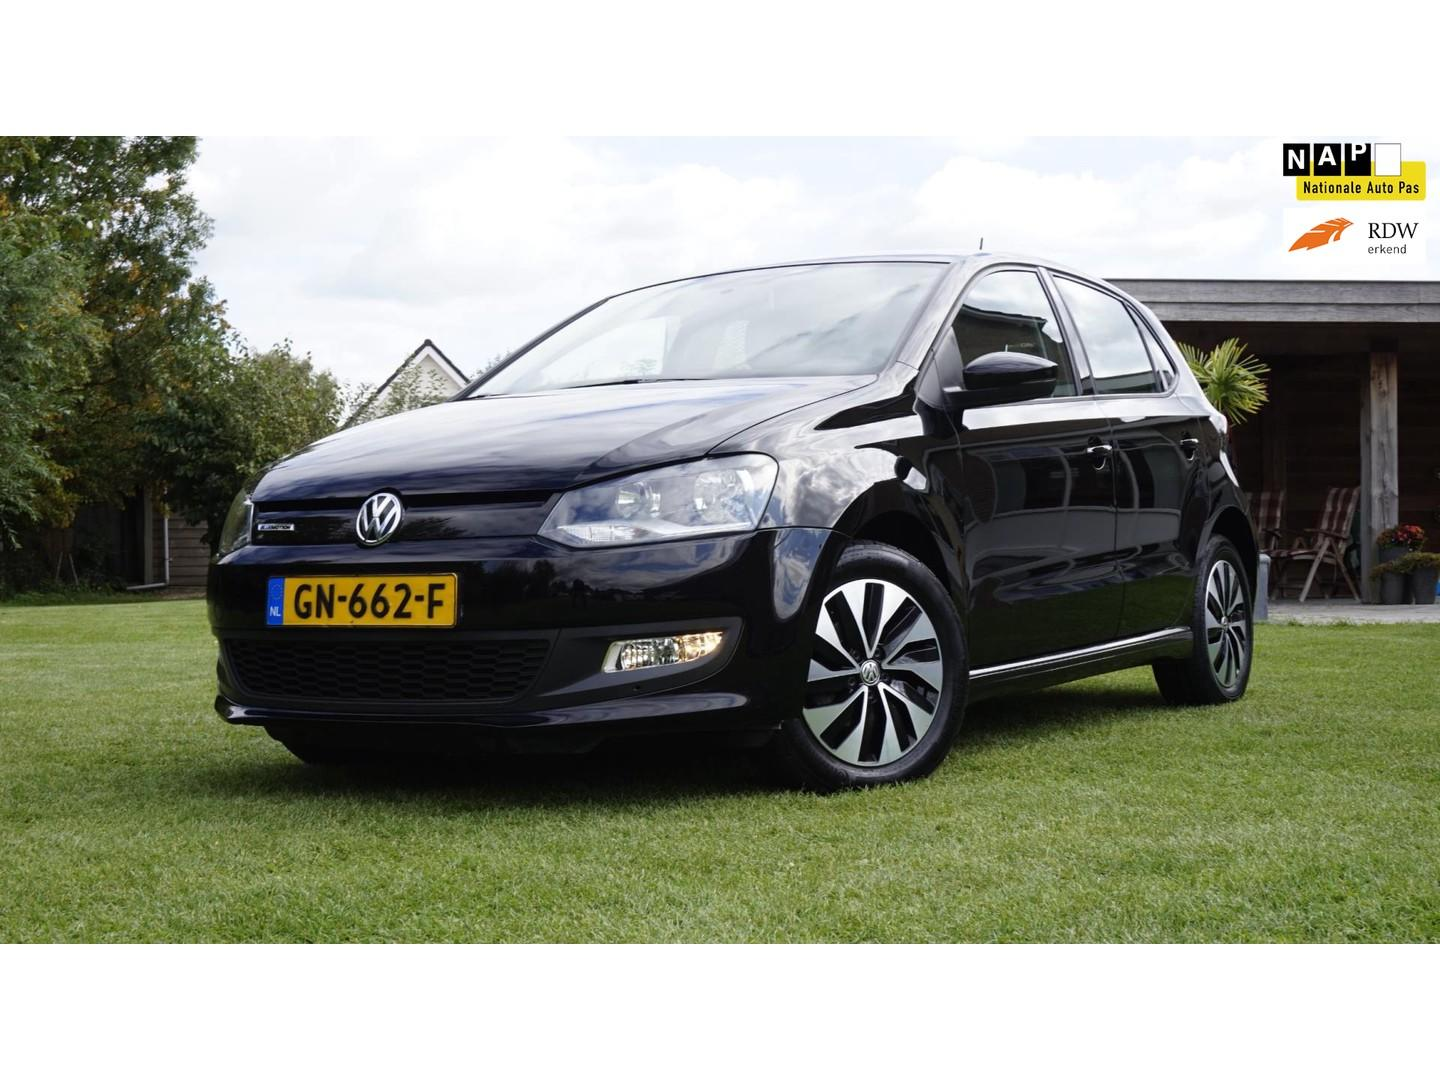 Volkswagen Polo 1.4 tdi bluemotion navigatie 5 drs airco